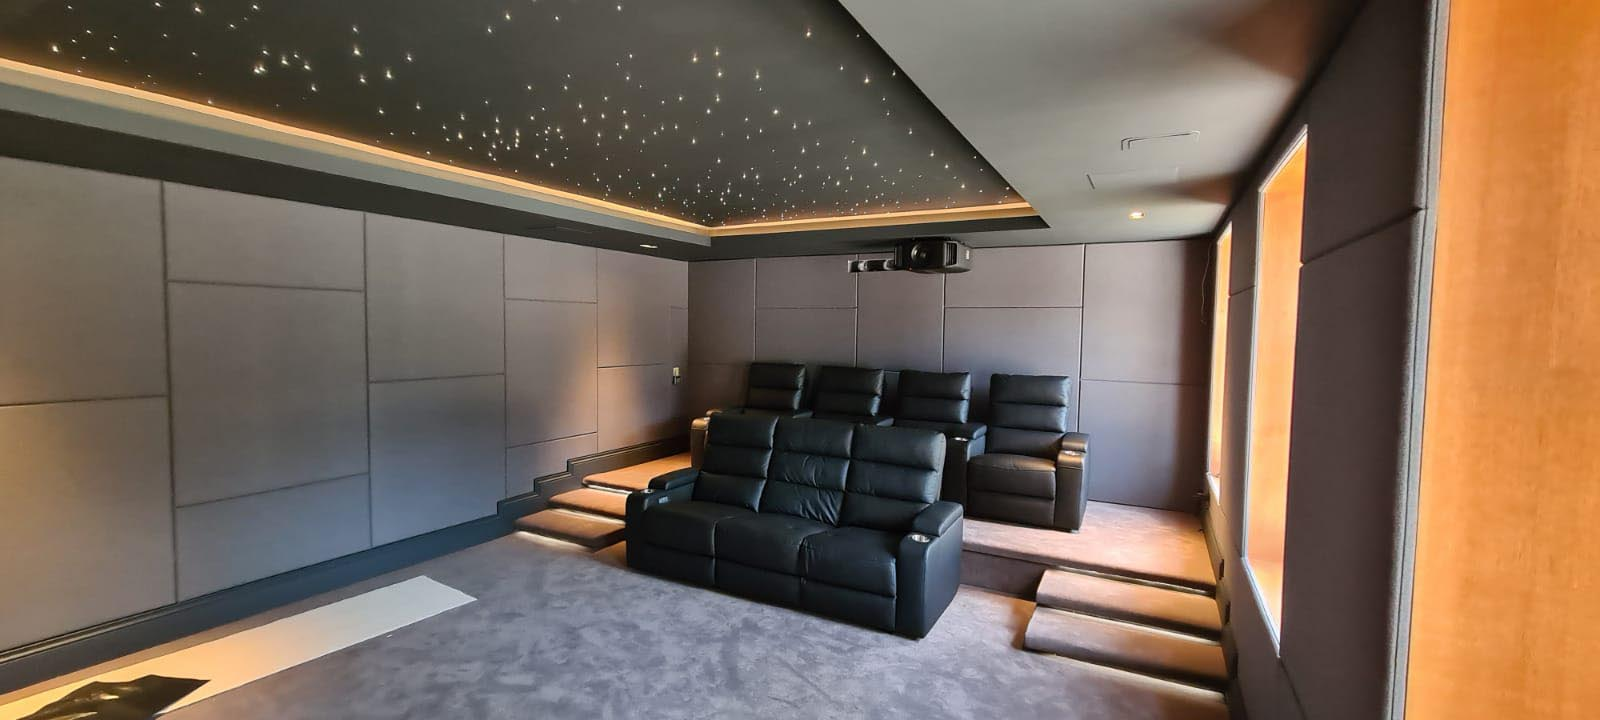 Home Cinema Installations Reading - Lantec Security